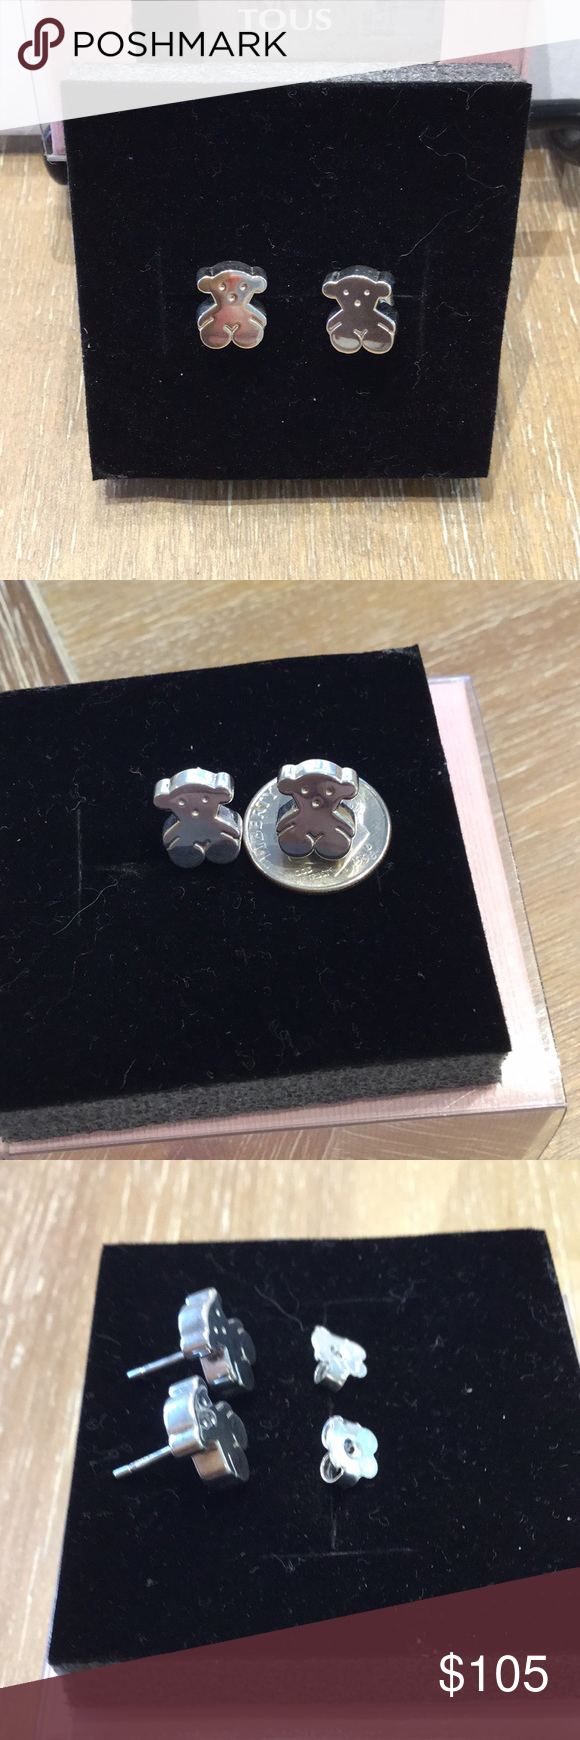 Tous Bear Silver Earrings Never Worn Tous Bear Silver Earrings Never